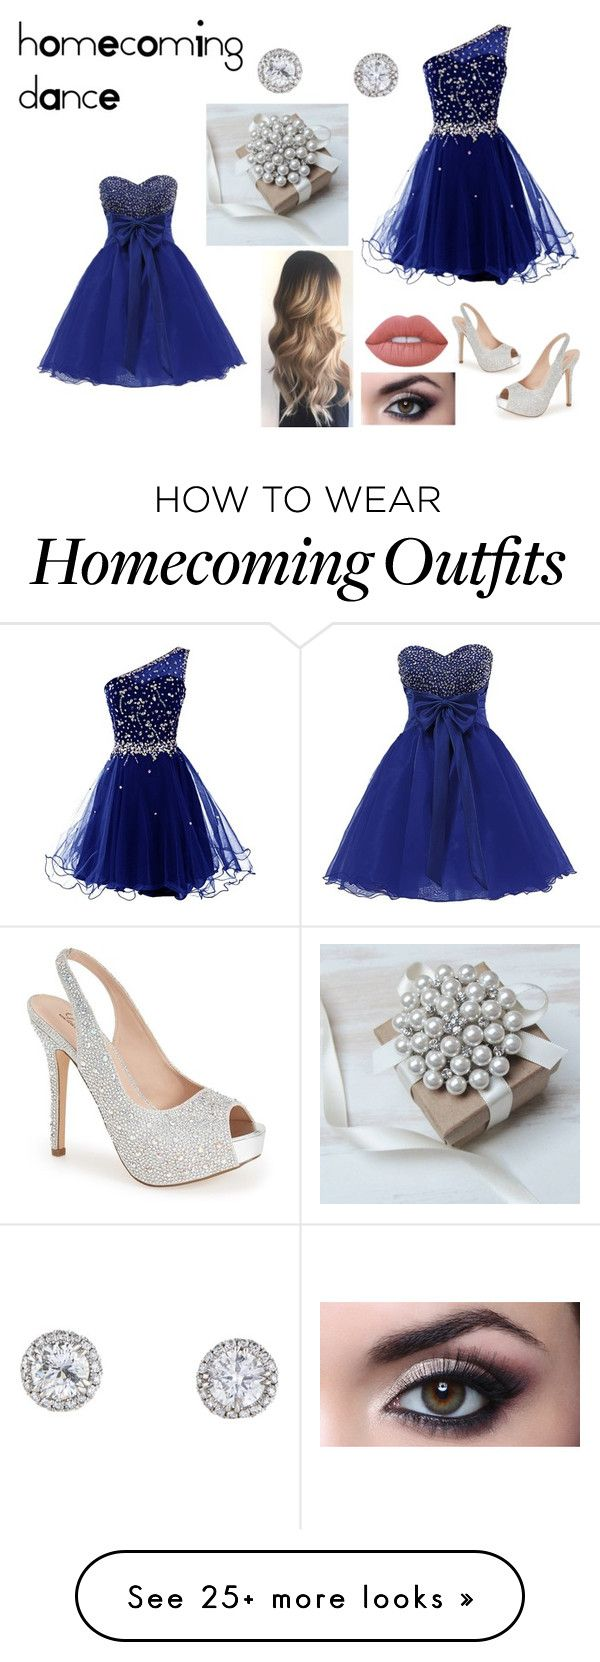 """Homecoming Dance 2016"" by megmarg on Polyvore featuring Lauren Lorraine, Lime…"